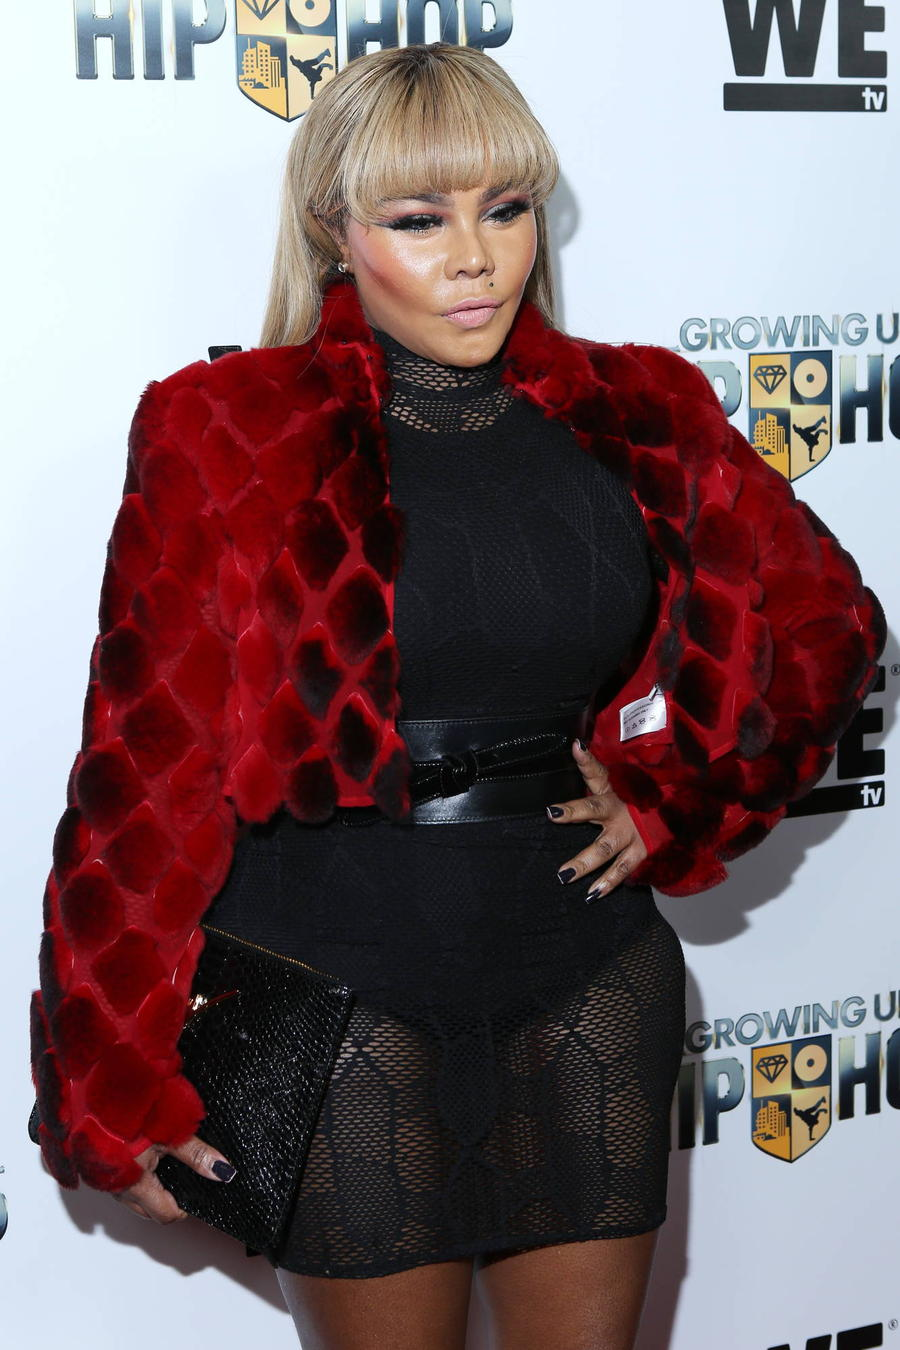 Lil' Kim Attacks Bloggers Over Fake Photo